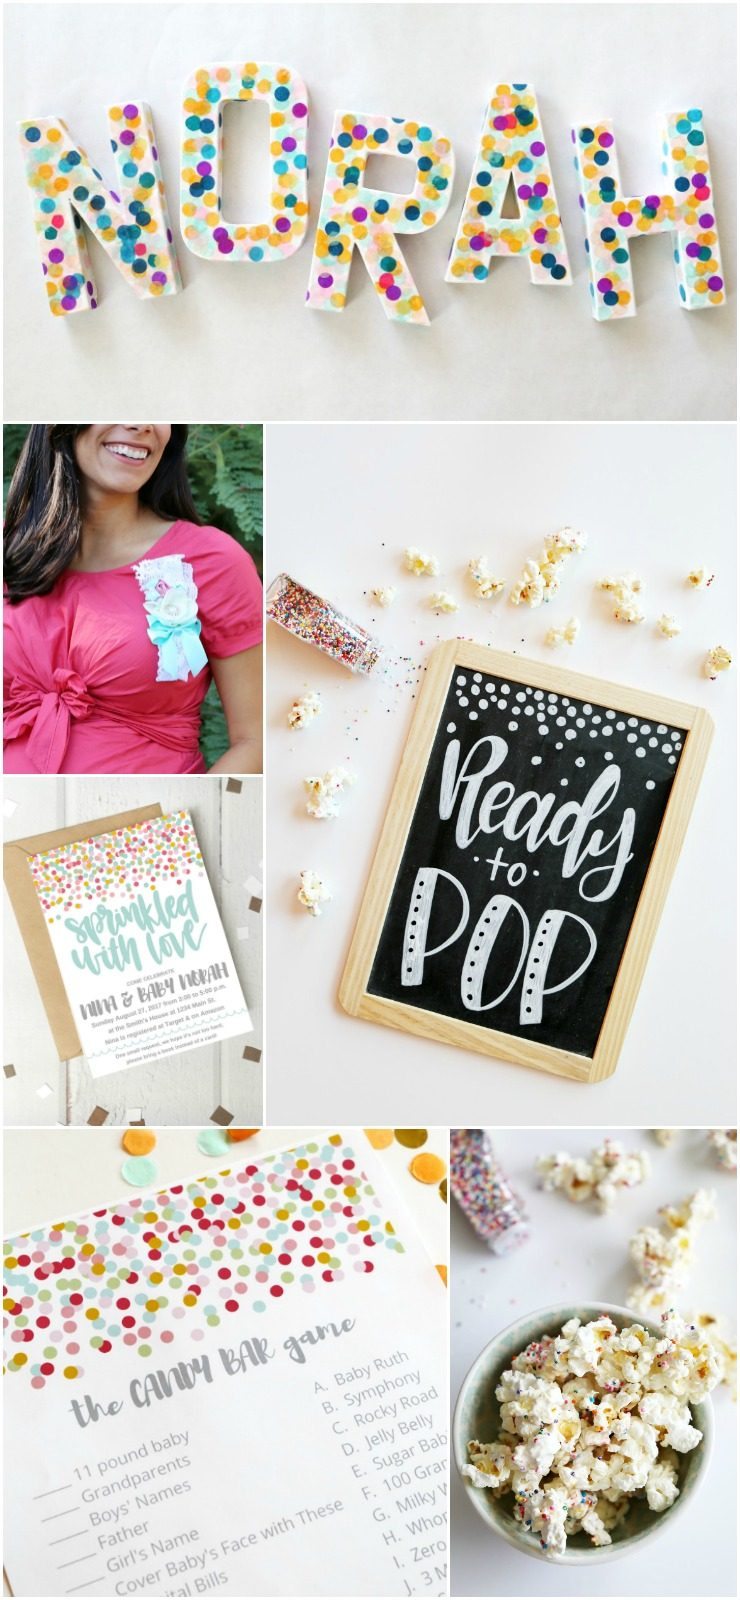 Sprinkle Baby Shower Ideas, Printables, and Games: the Child at Heart blog